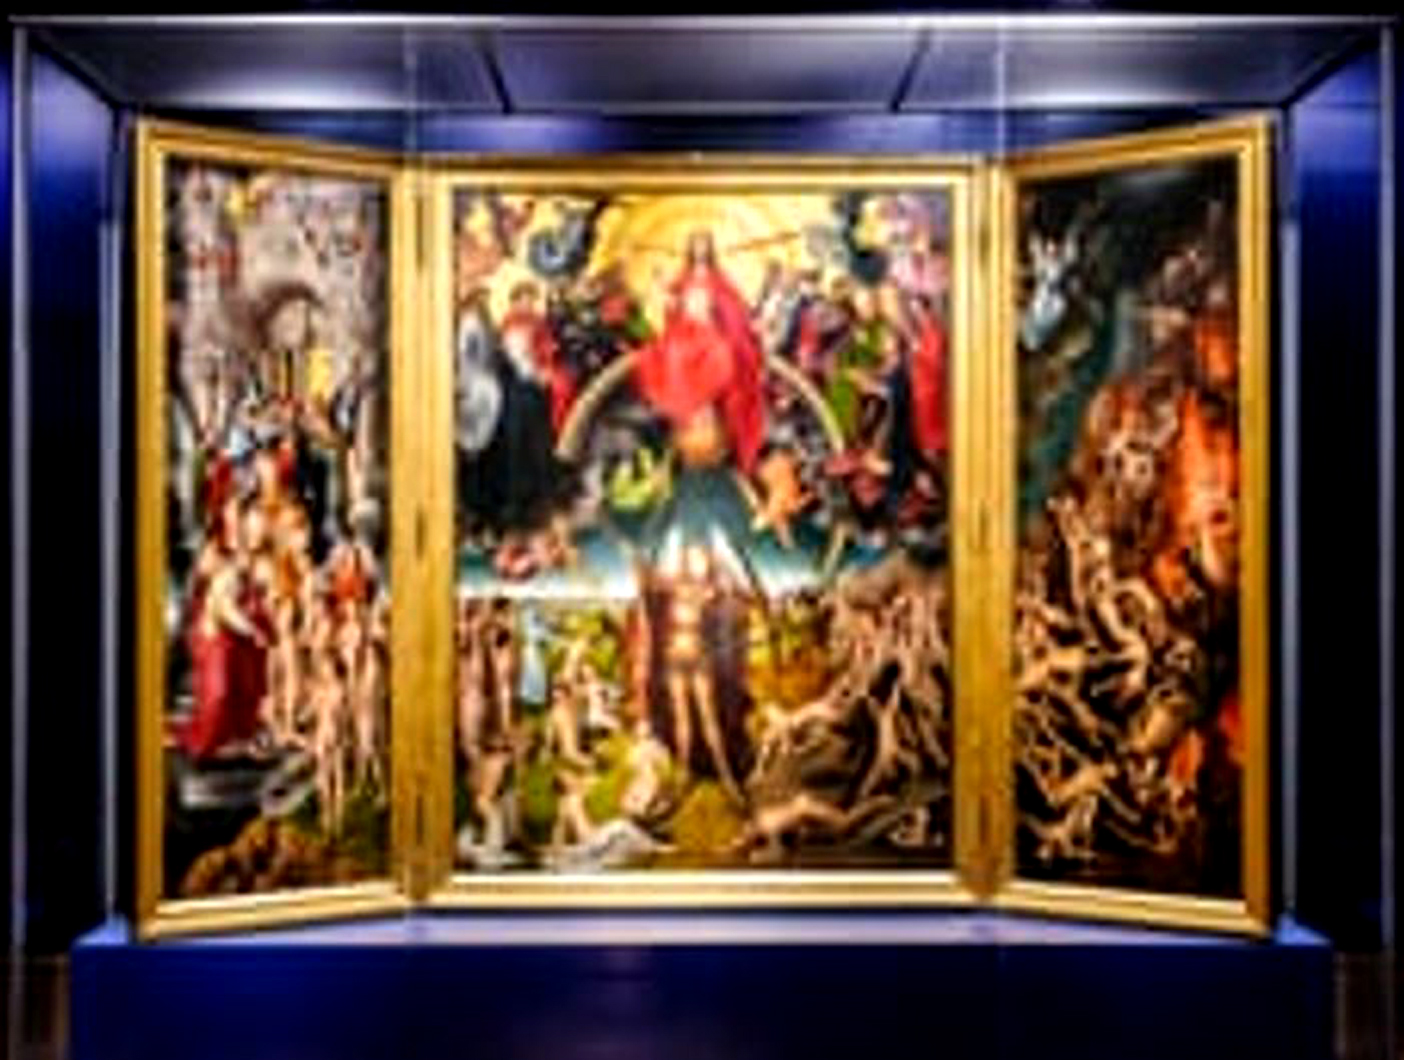 The Last Judgment, a triptych by the German-born painter Hans Memling, during a journey to Florence. Image Credit: Photograph: Stephen Barnes / Religion / Alamy, 2019.